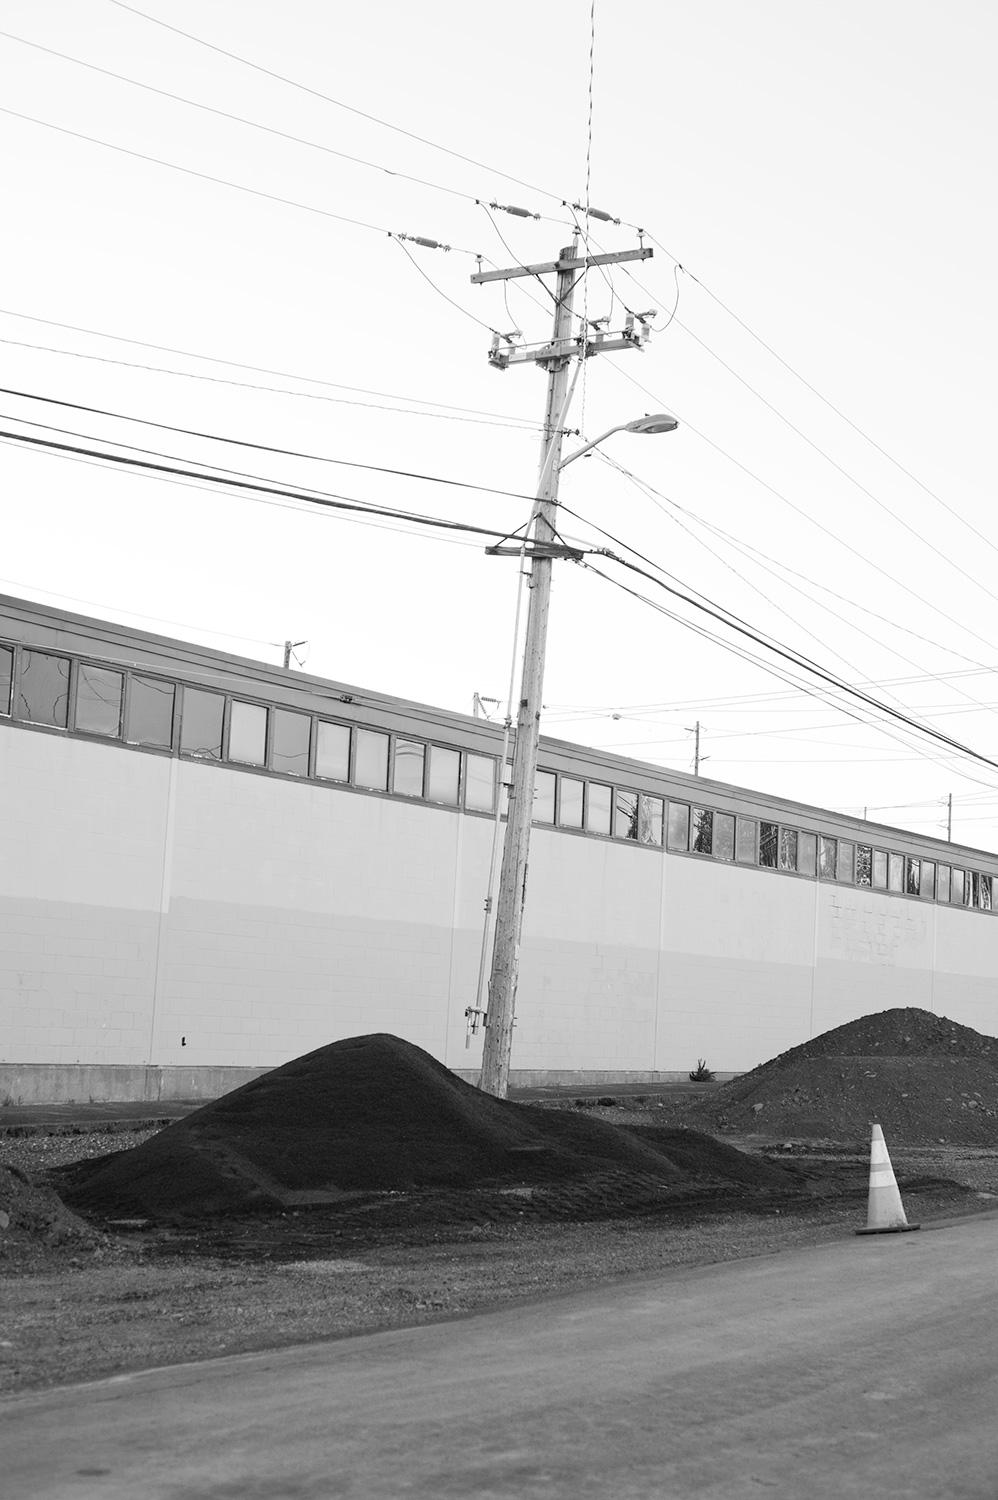 160603_piles_and_wires_8110.jpg